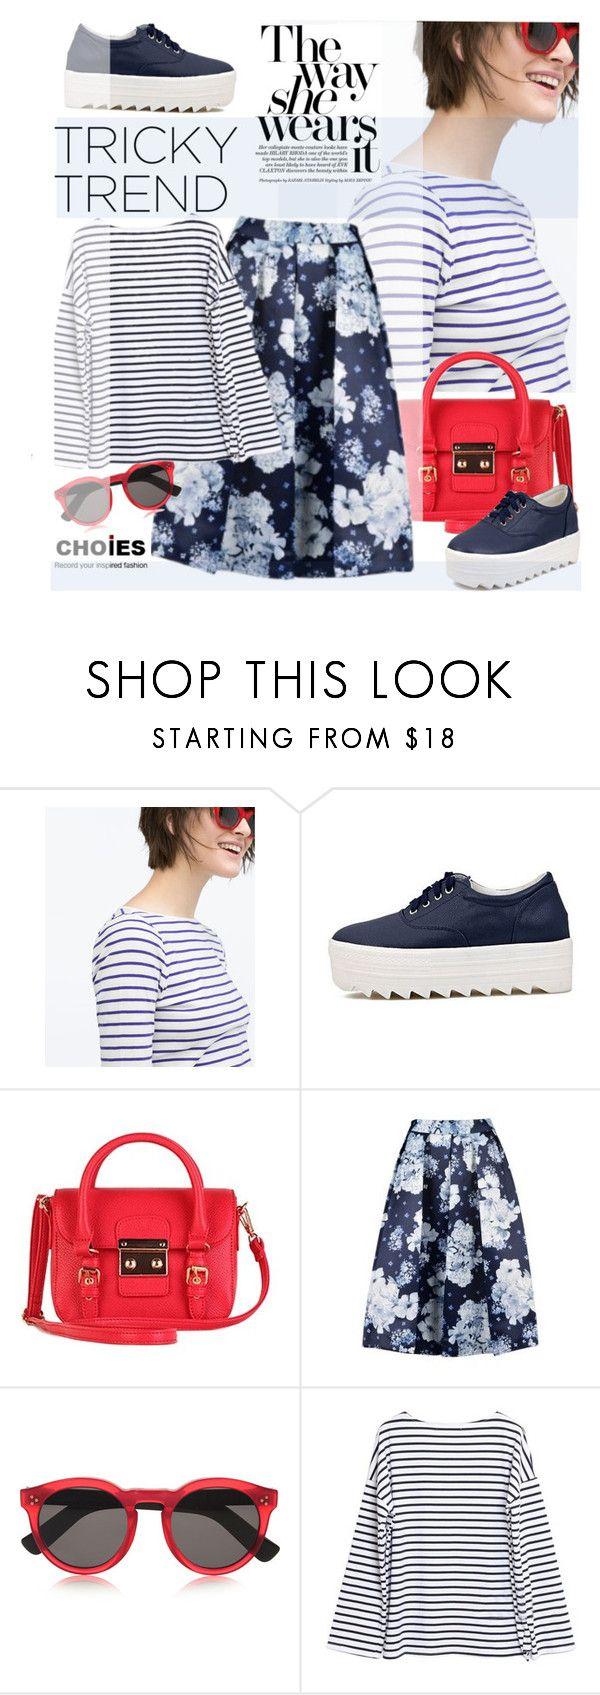 """""""Tricky Trend: Platform Sneakers"""" by ansev ❤ liked on Polyvore featuring Zara, Illesteva, Choies and platformsneakers"""